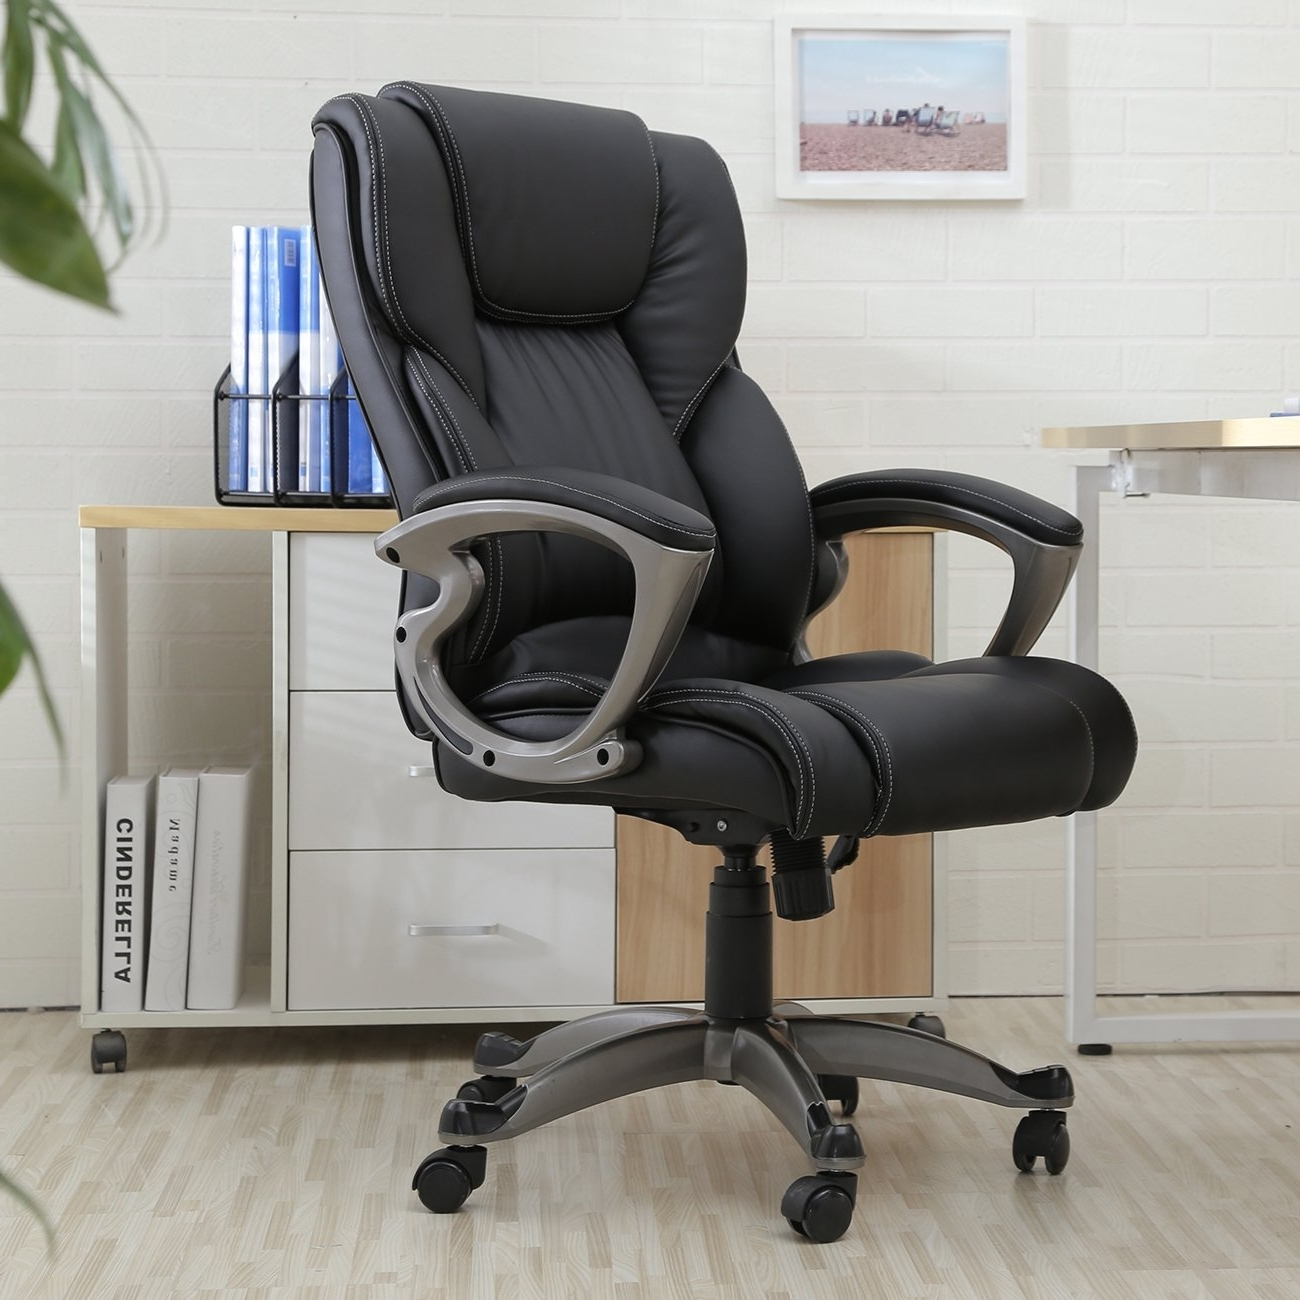 Chairs : Heavy Duty Leather Office Rolling Computer Chair Black Throughout Latest Large Executive Office Chairs (View 5 of 20)